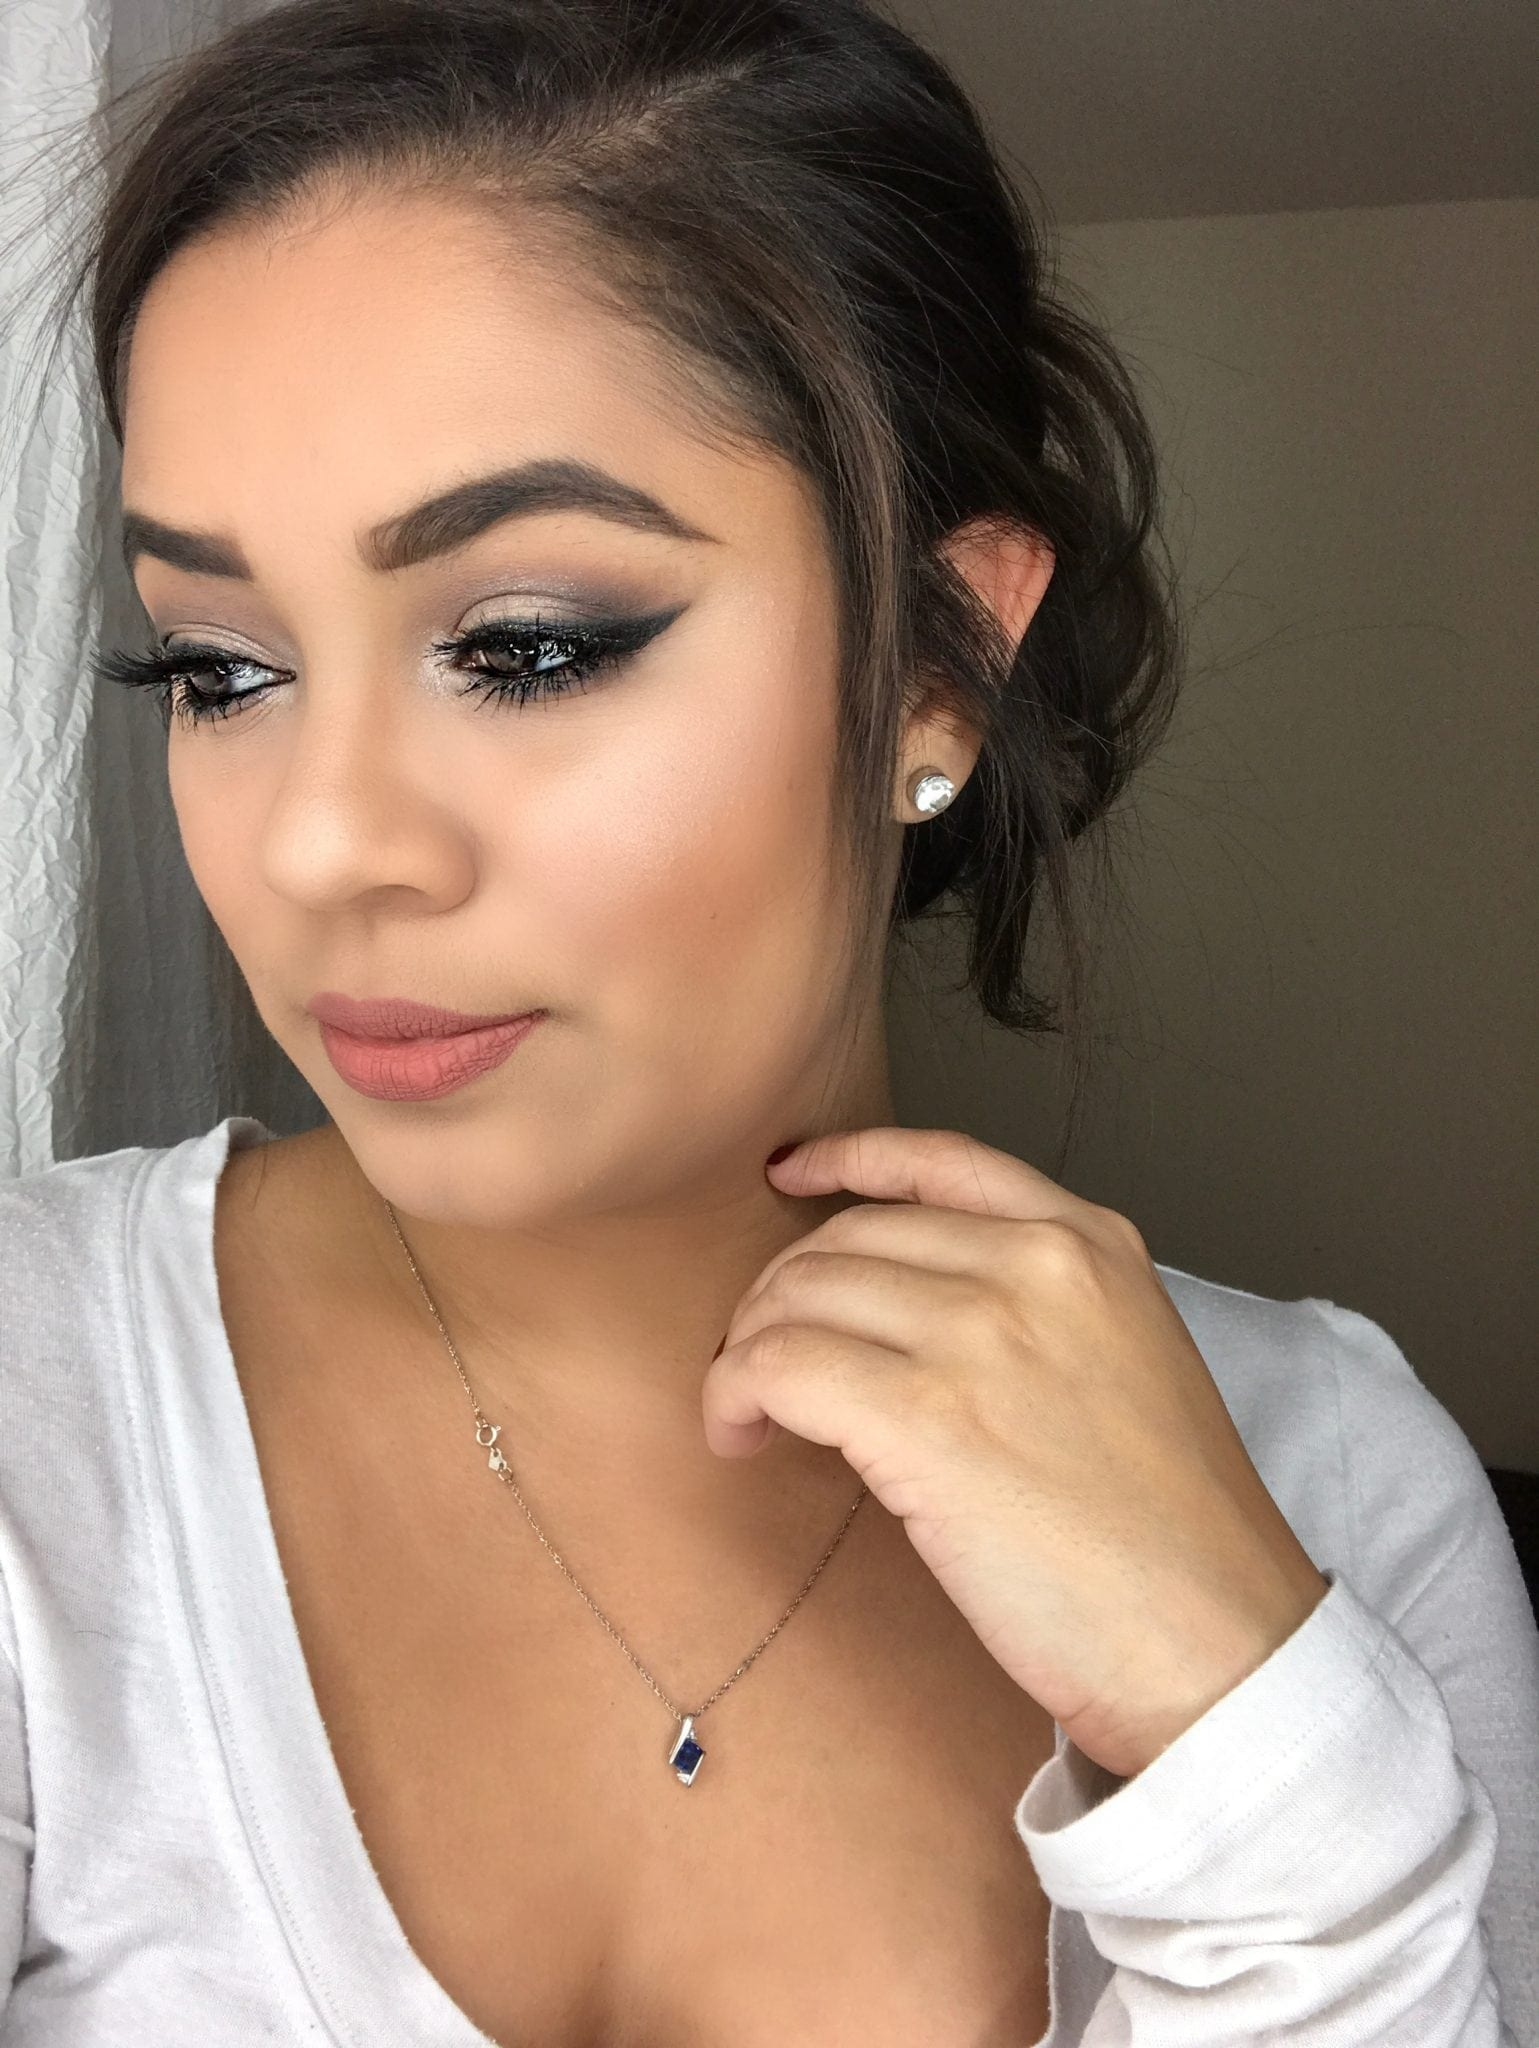 Doing Your Own Wedding Makeup Tips : Wedding Makeup and Tips // Guest Post - A Blissful Haven